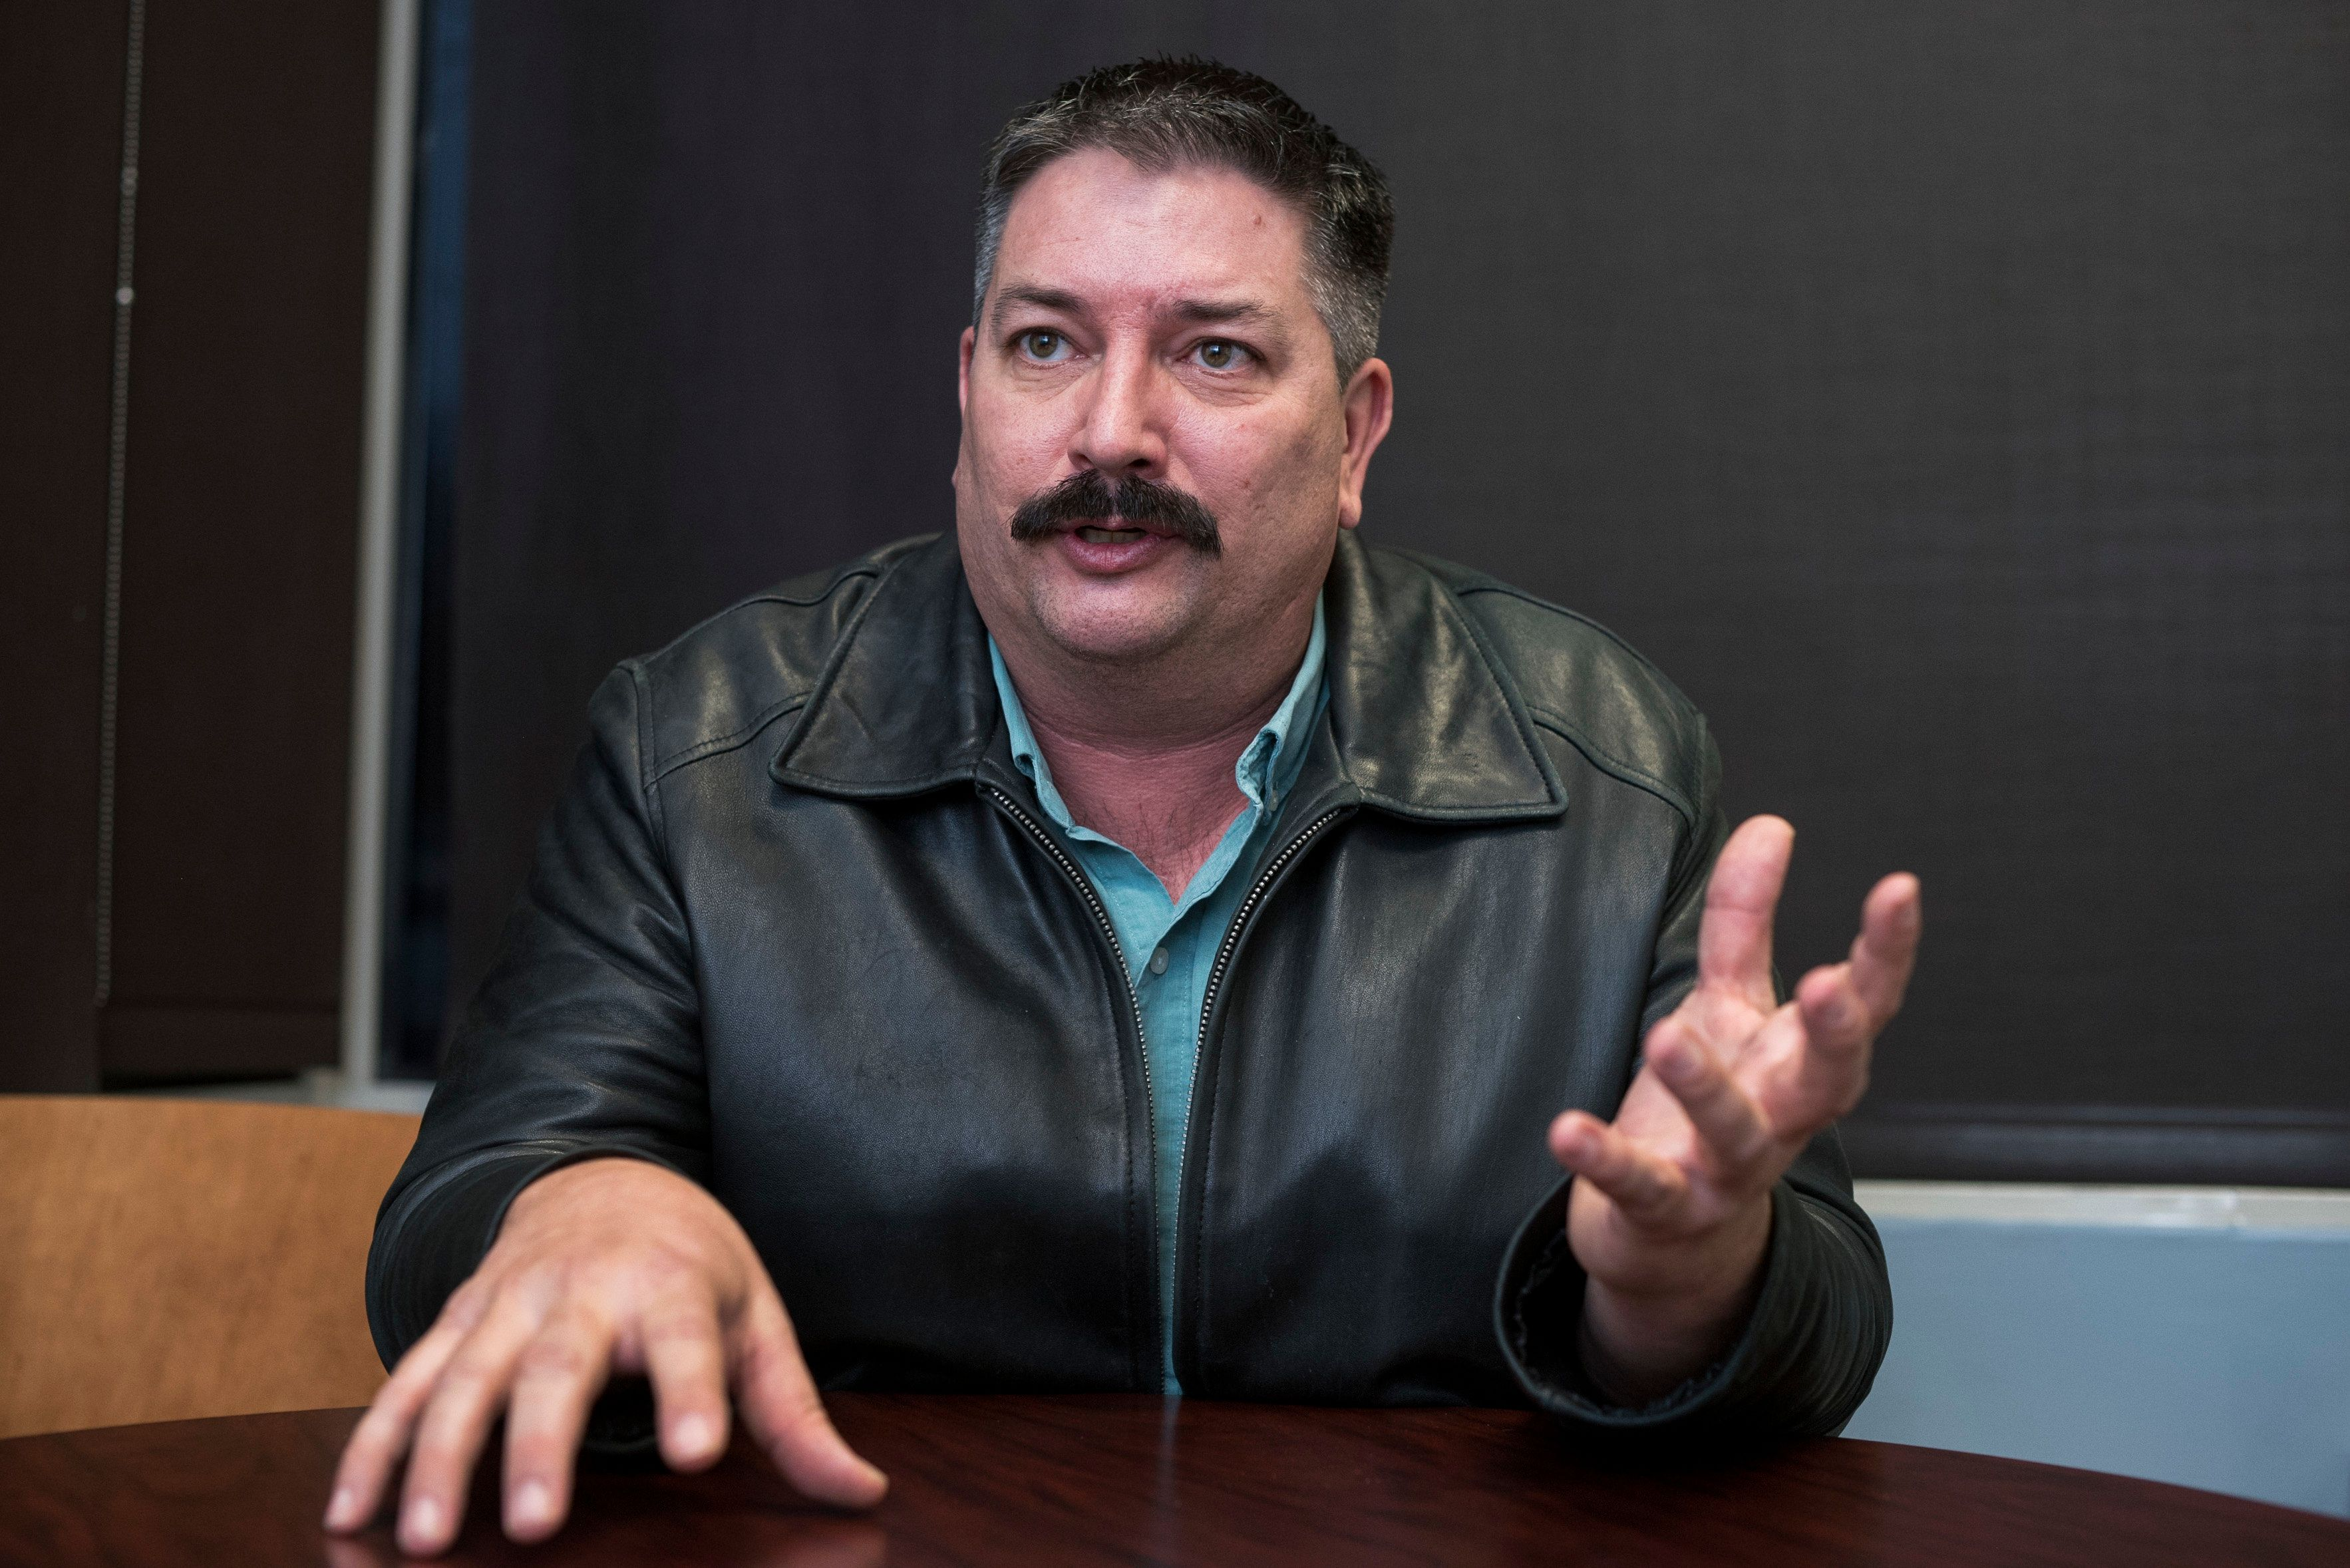 UNITED STATES - JANUARY 29: Randy Bryce, Democratic candidate for Wisconsins 1st Congressional District, is interviewed at the Democratic National Committee's headquarters on January 29, 2018. (Photo By Tom Williams/CQ Roll Call)